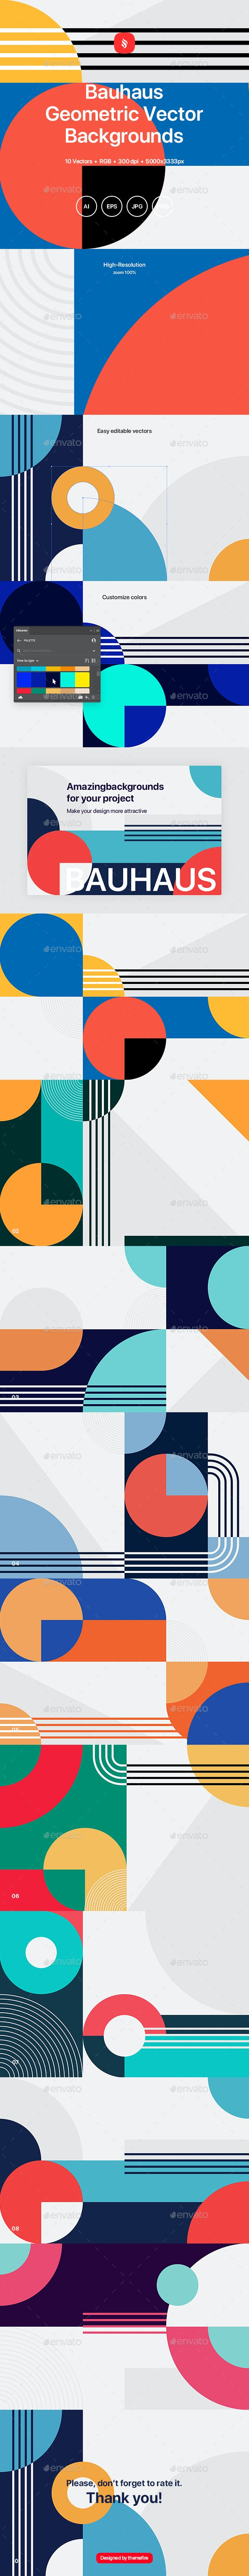 Bauhaus - Geometric Vector Backgrounds - Abstract Backgrounds